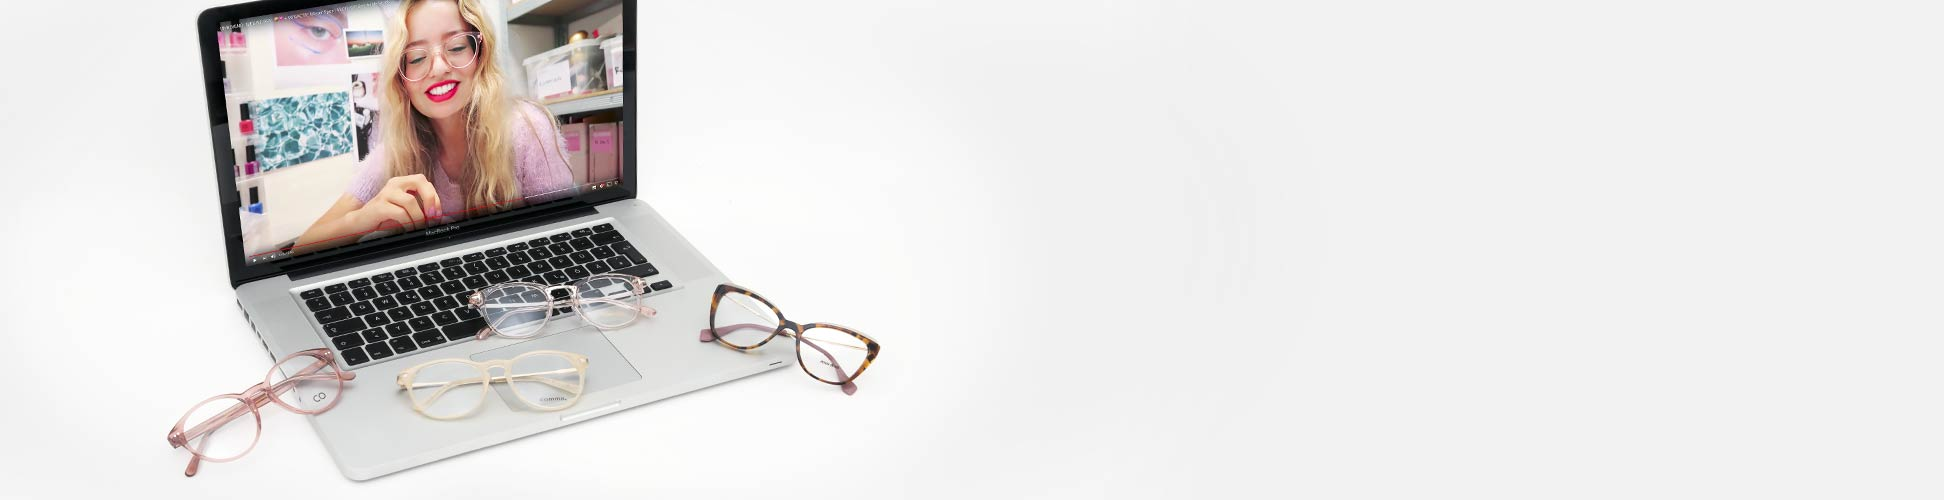 Glamour fashion report - Mister Spex